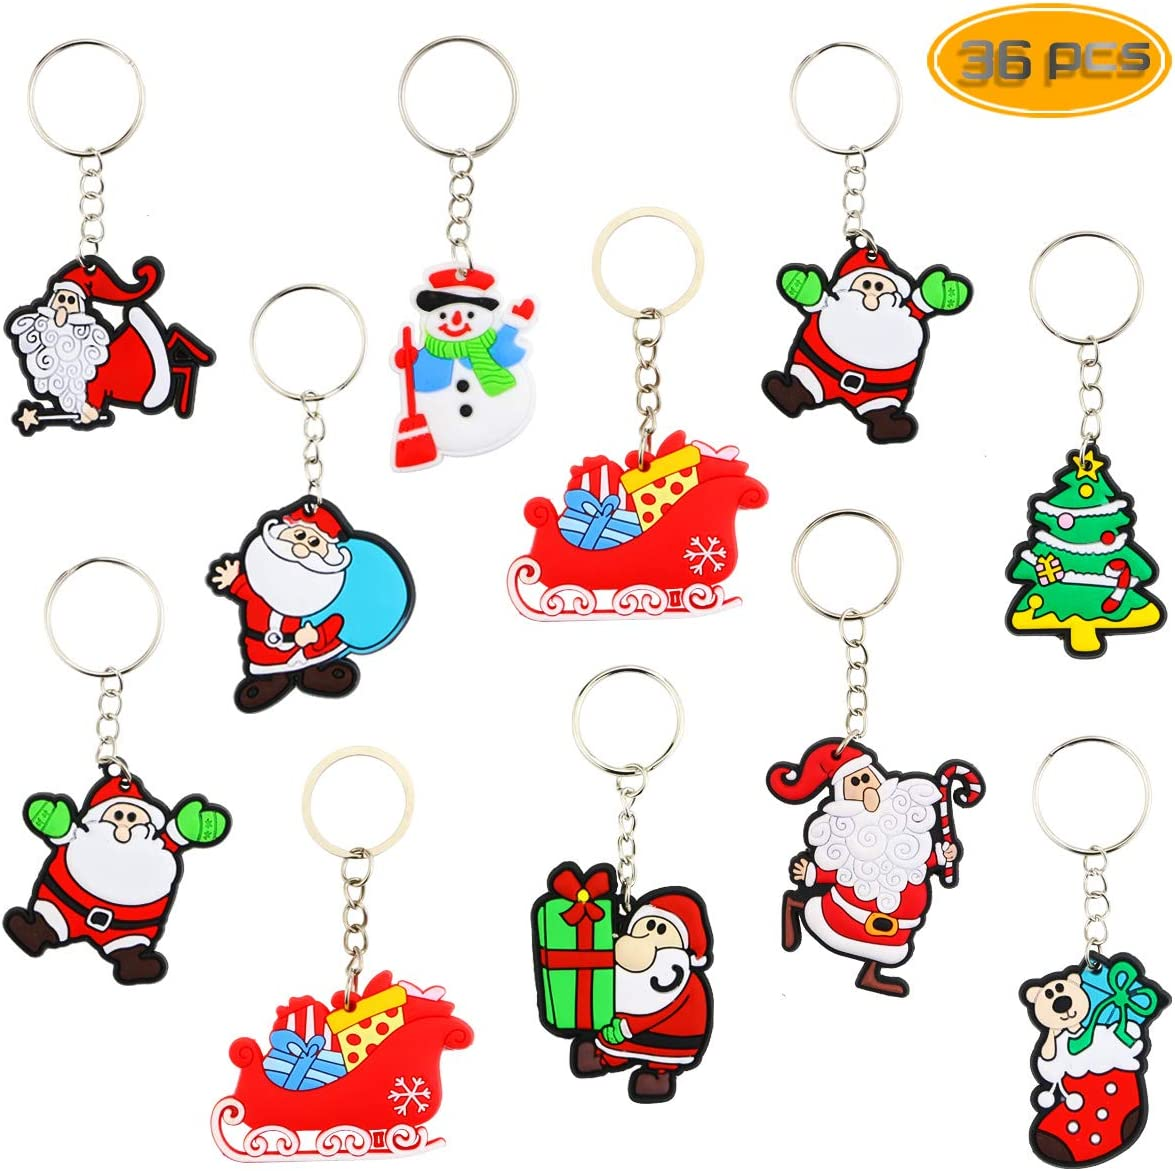 BeautyMood 36 Pcs Santa Claus Cartoon Keychain PVC Soft Keychain Cartoon Key Pendant Creative Key Ring Small Gift For Christmas.